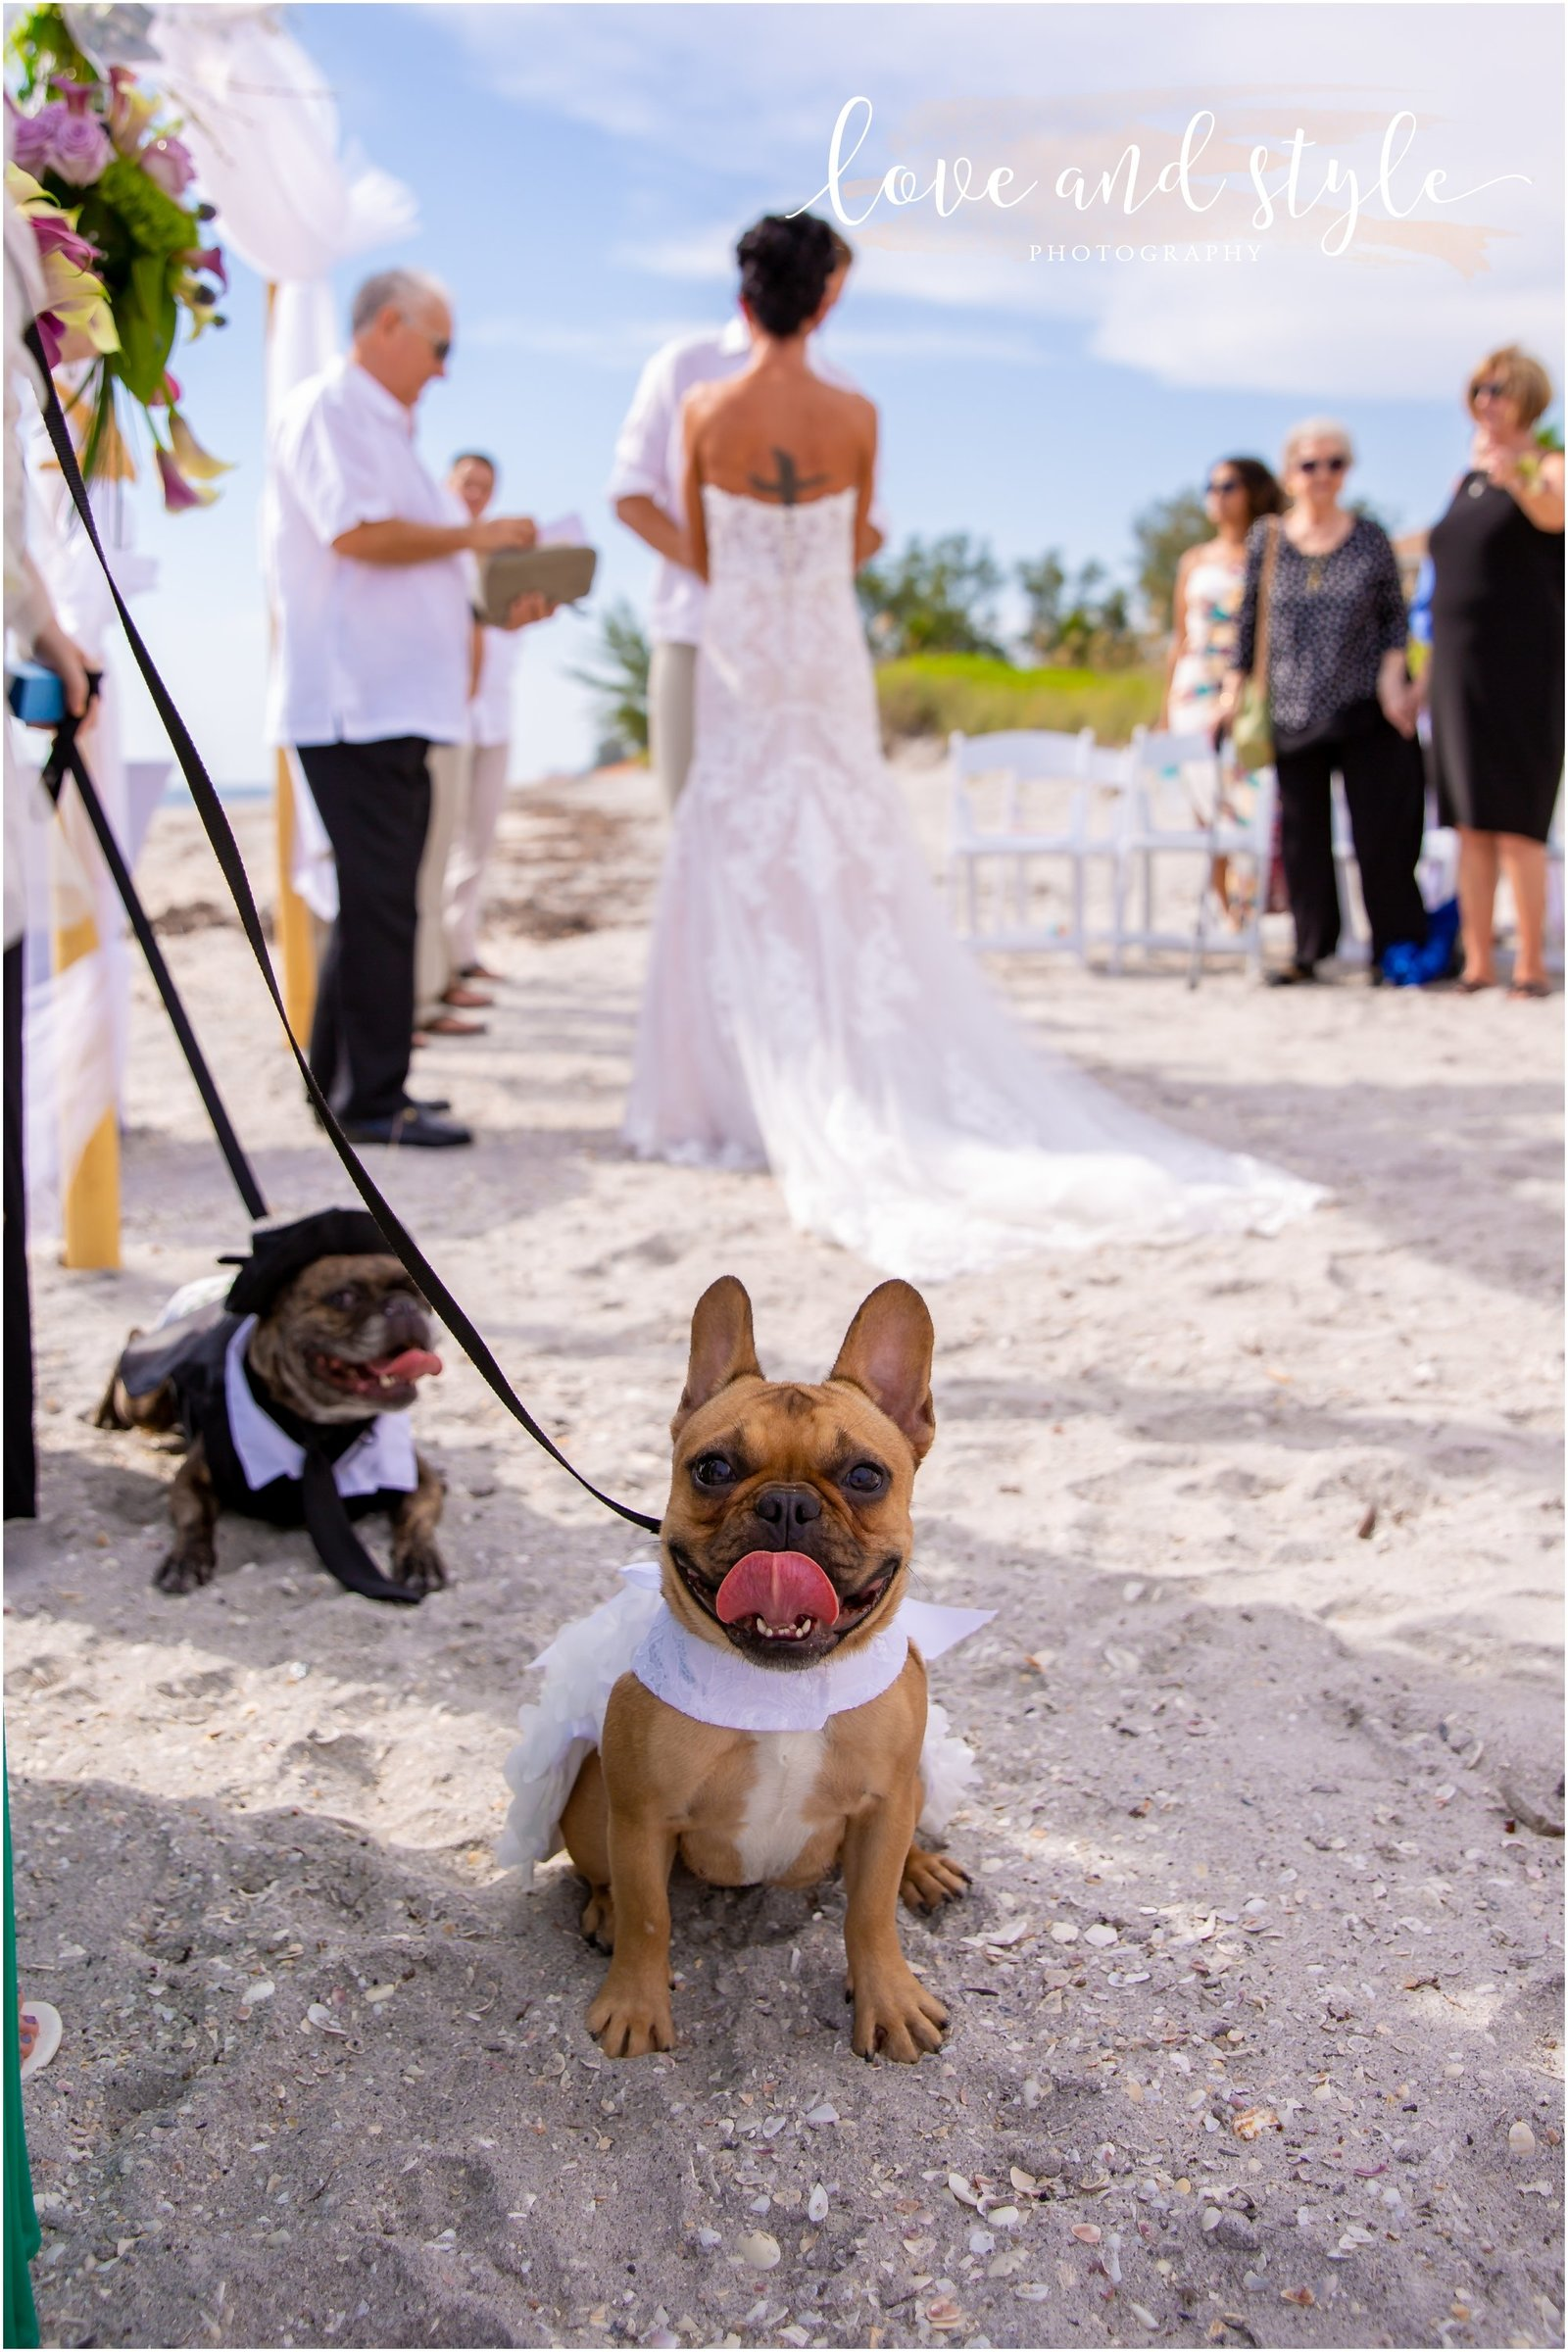 Frenchies as part of the wedding party at Siesta Key Beach